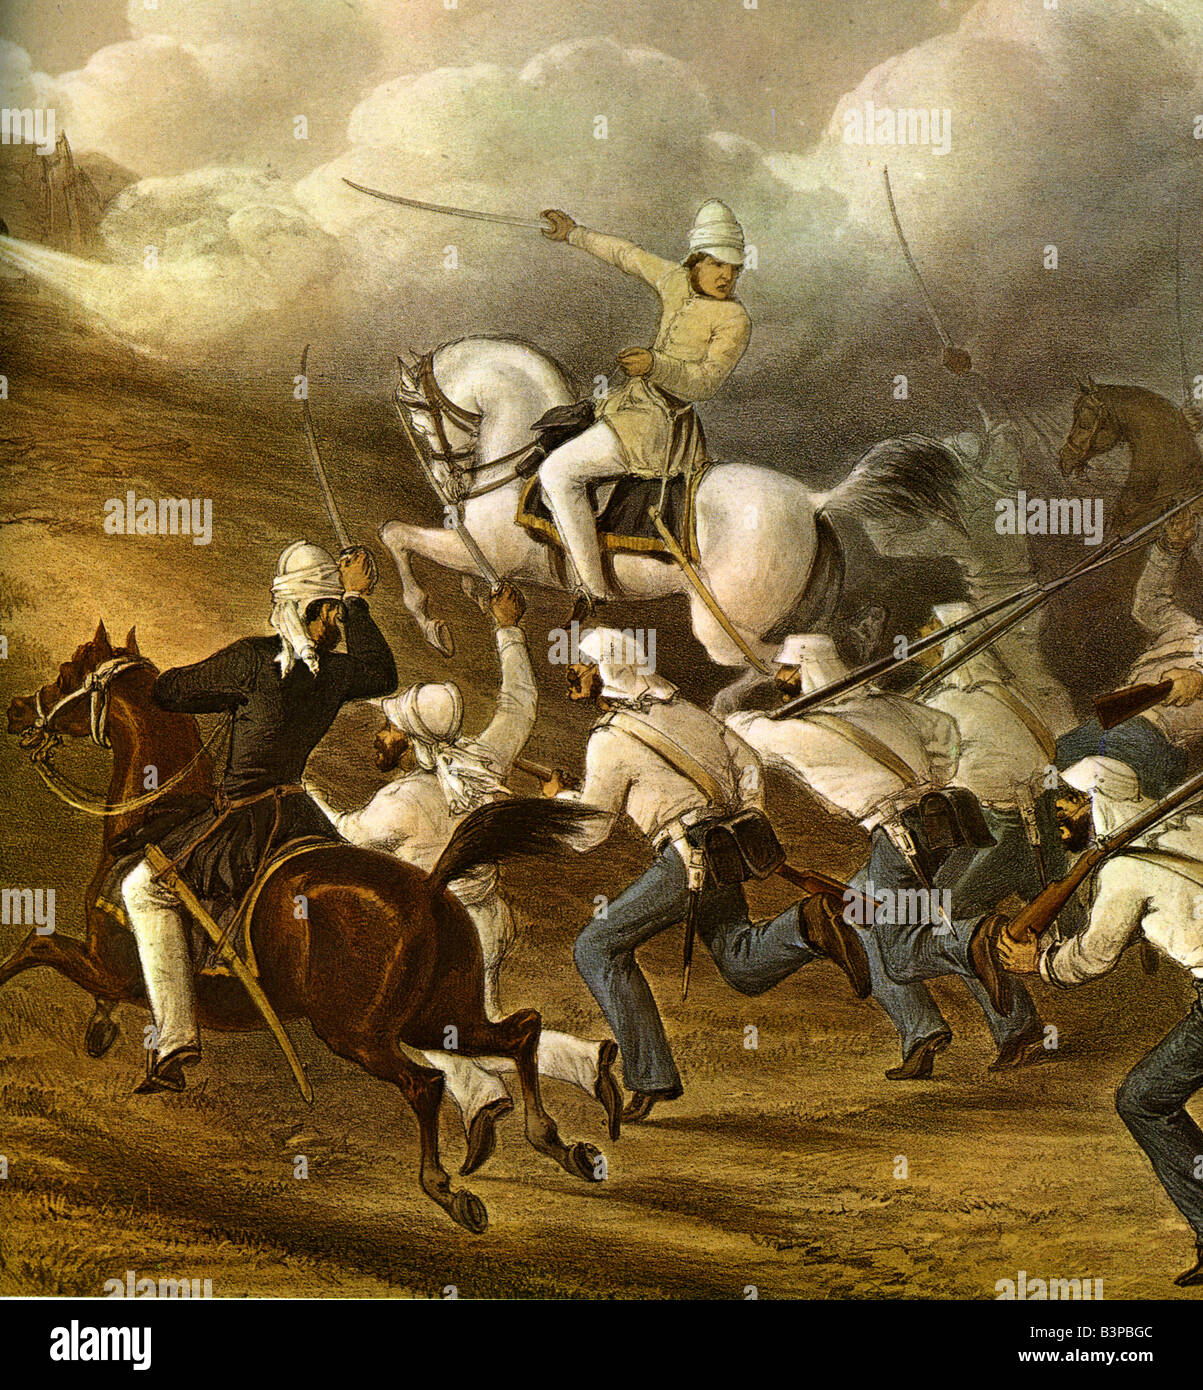 INDIAN MUTINY British cavalry and infantry storm the batteries at Badle Serai, Delhi in 1857 - Stock Image